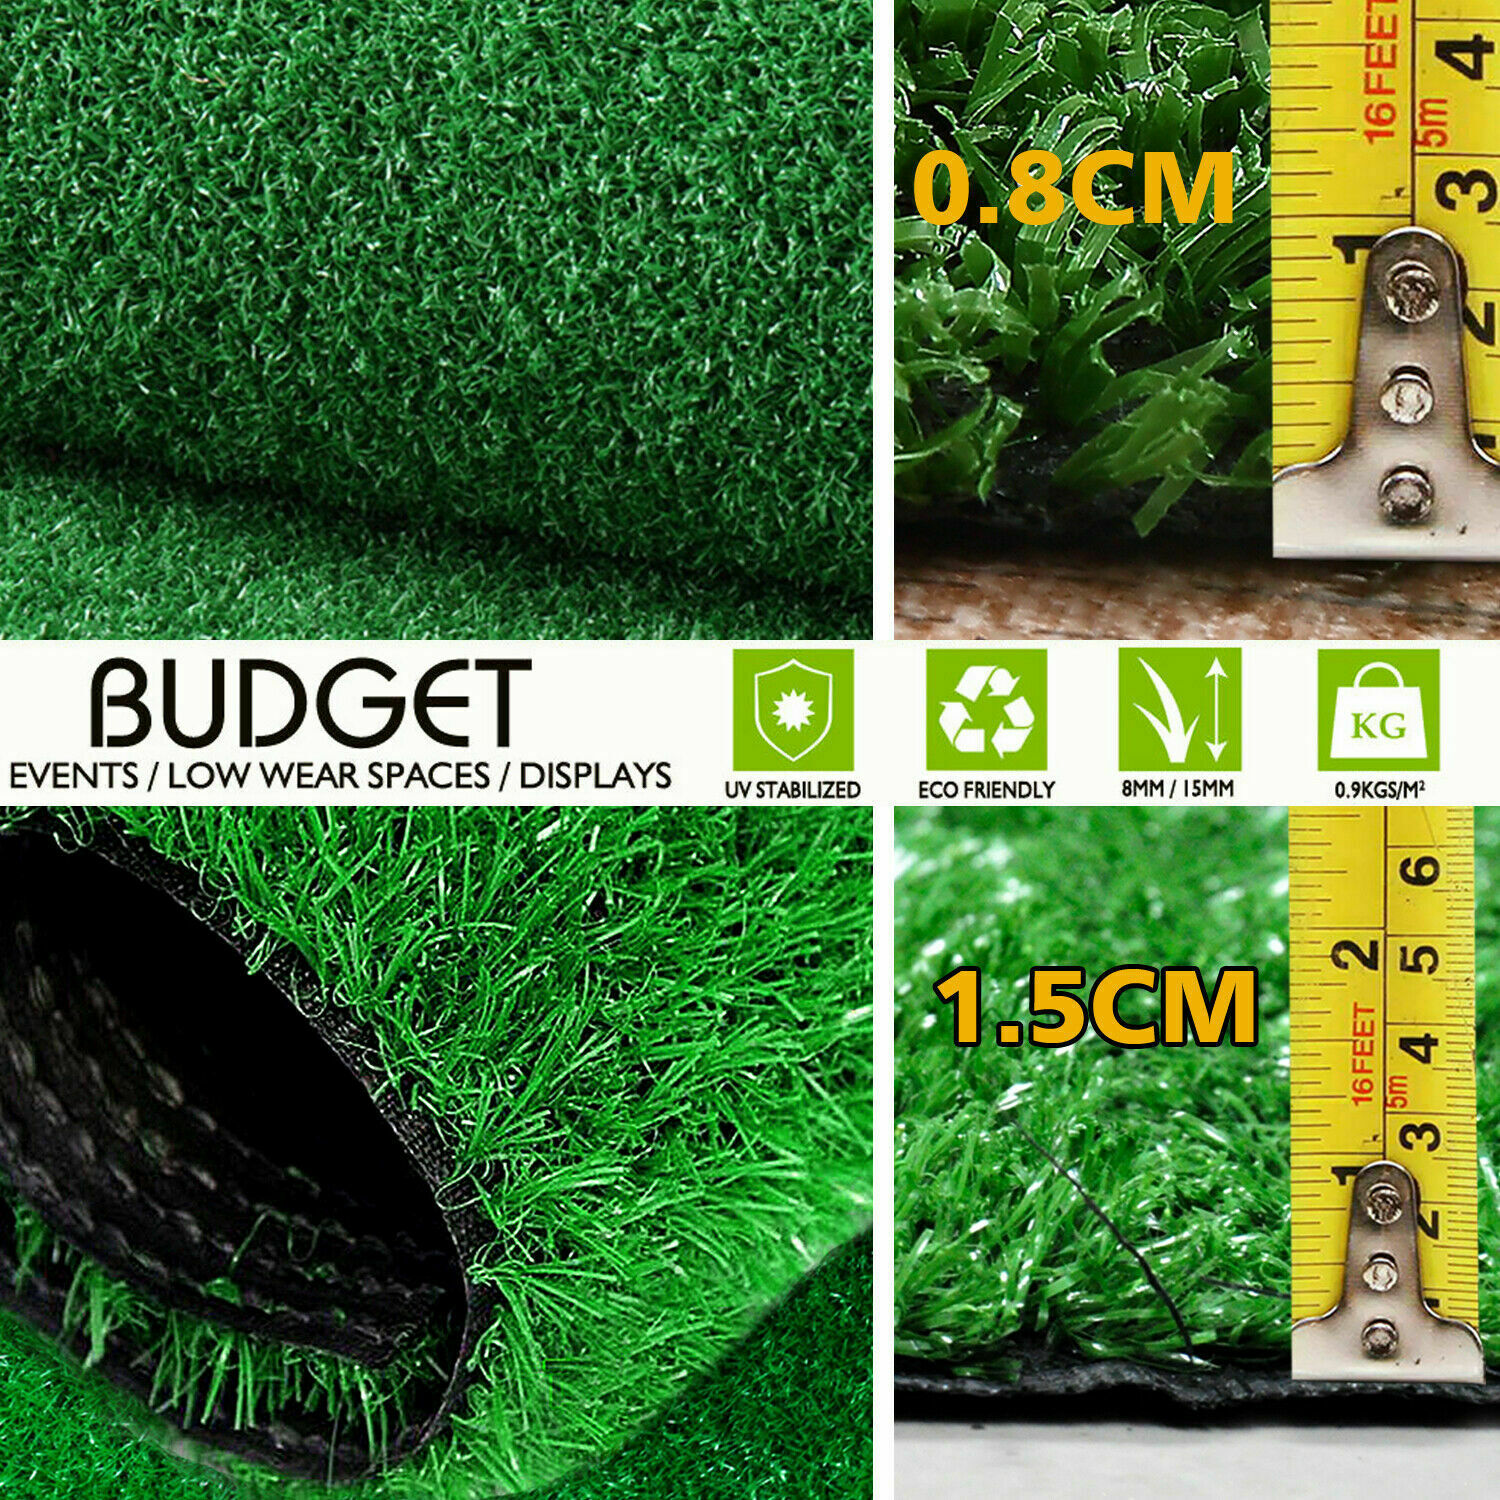 Synthetic-Grass-Turf-Decor-Artificial-Lawn-Fake-Plant-Plastic-Green-Flooring-Mat thumbnail 11